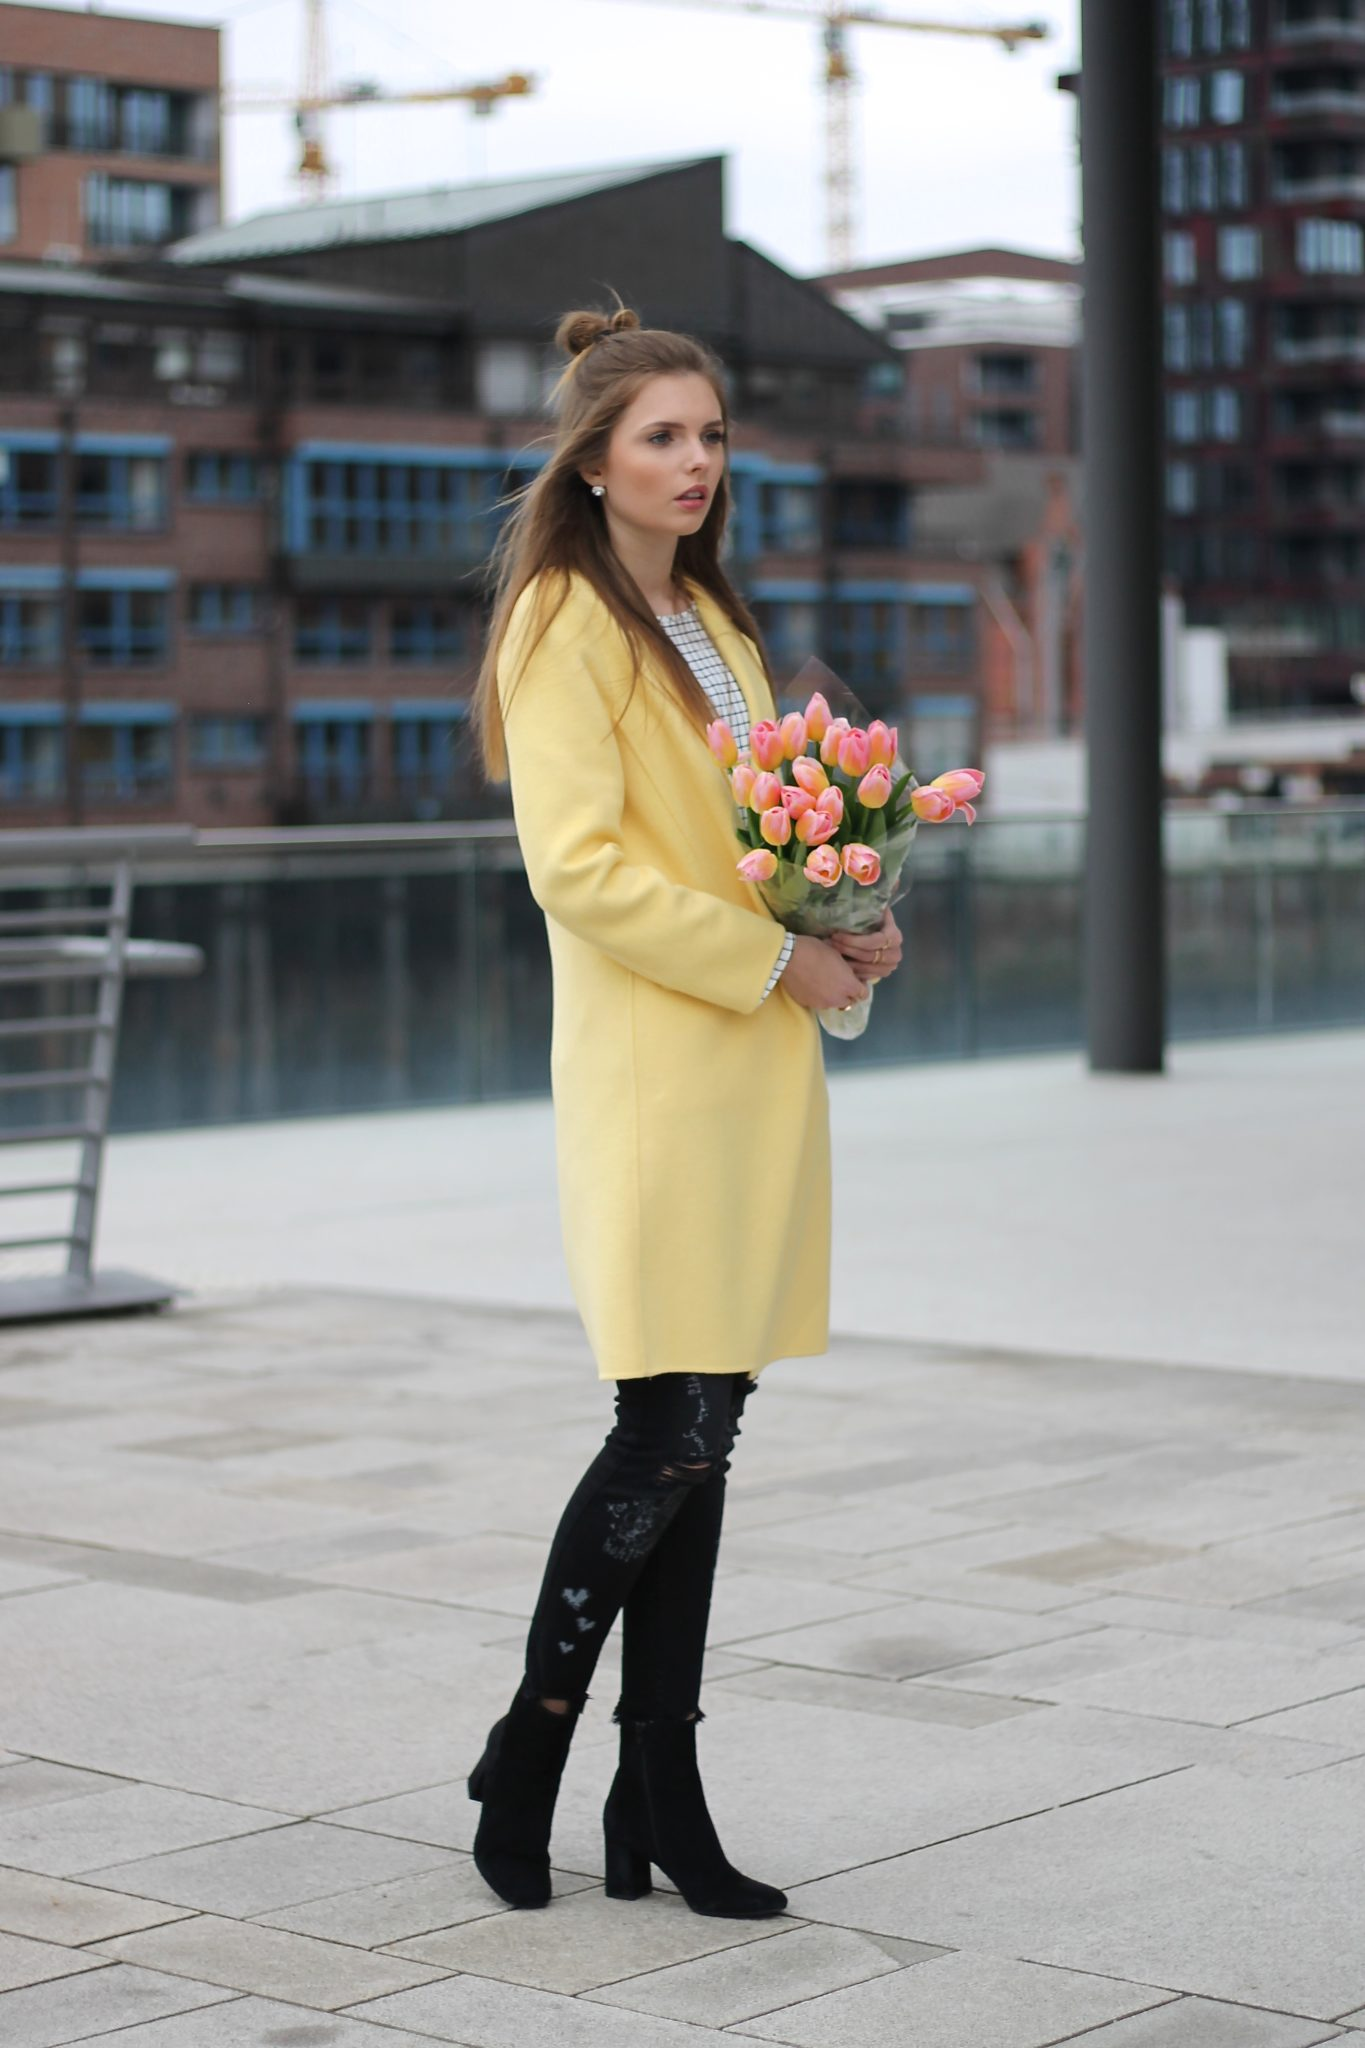 IMG 2460 - YELLOW COAT I SPRING